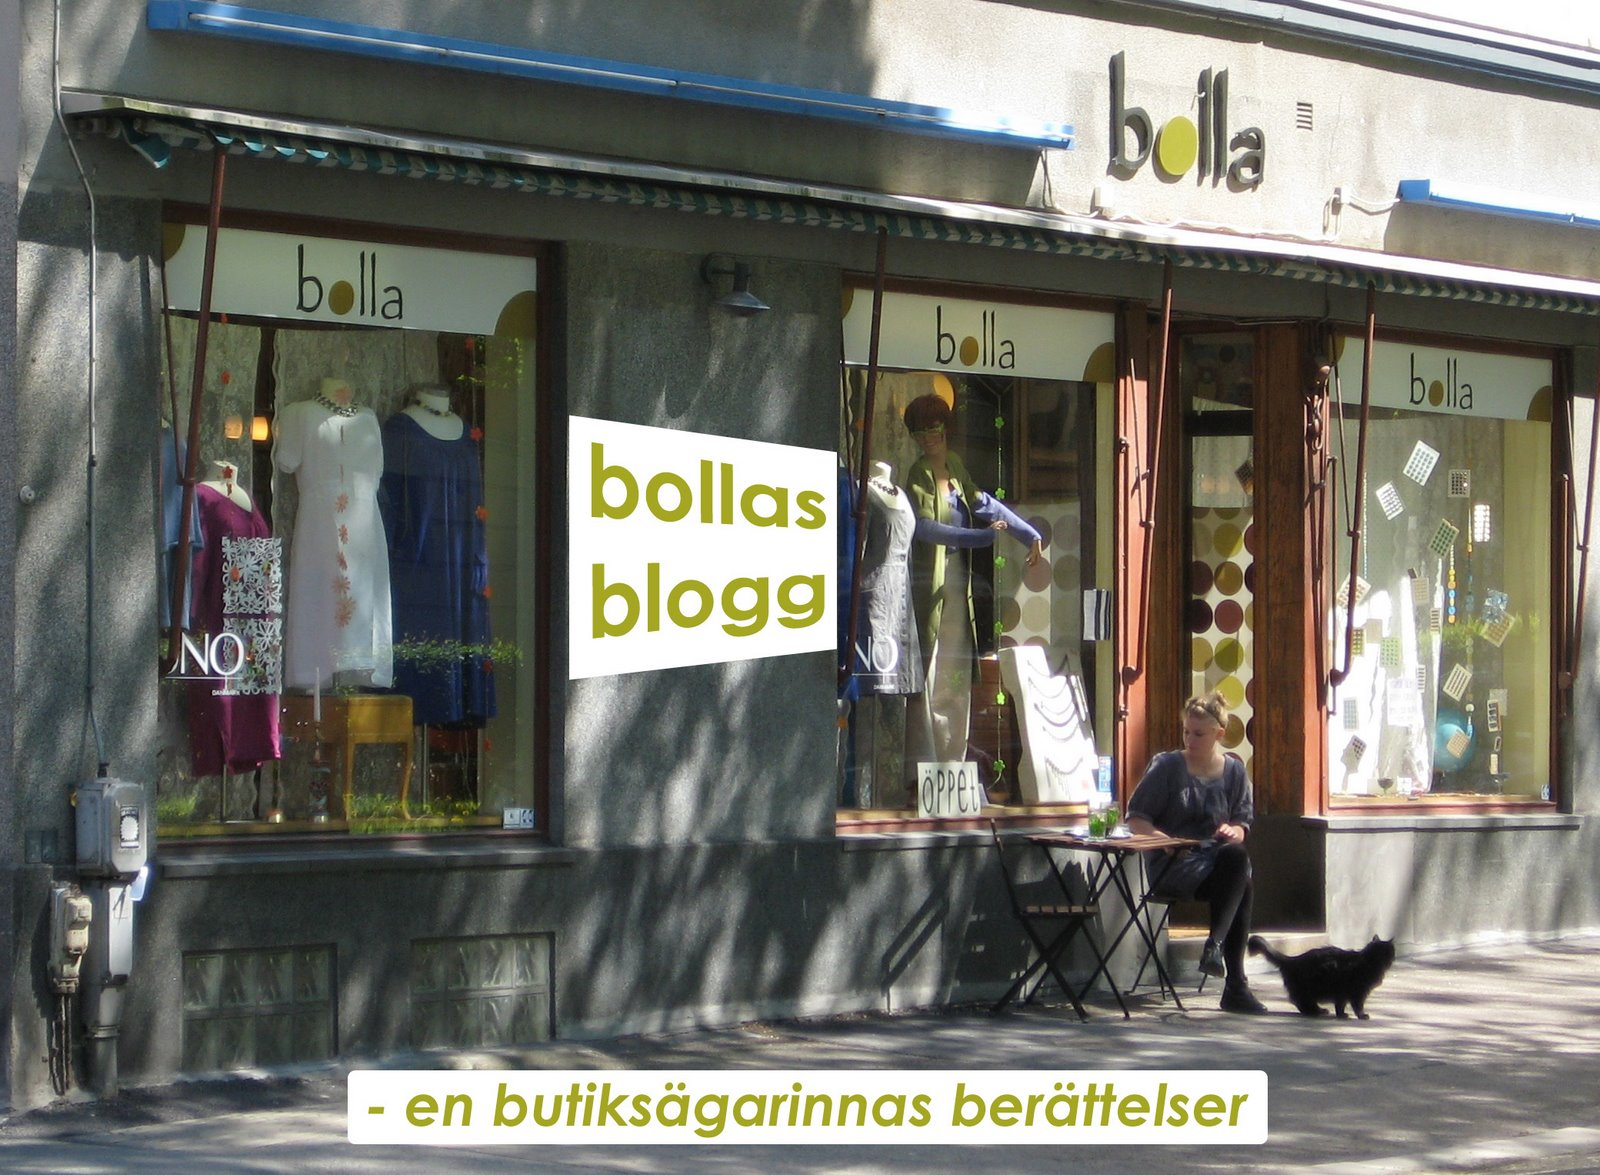 Butik Bolla bloggar